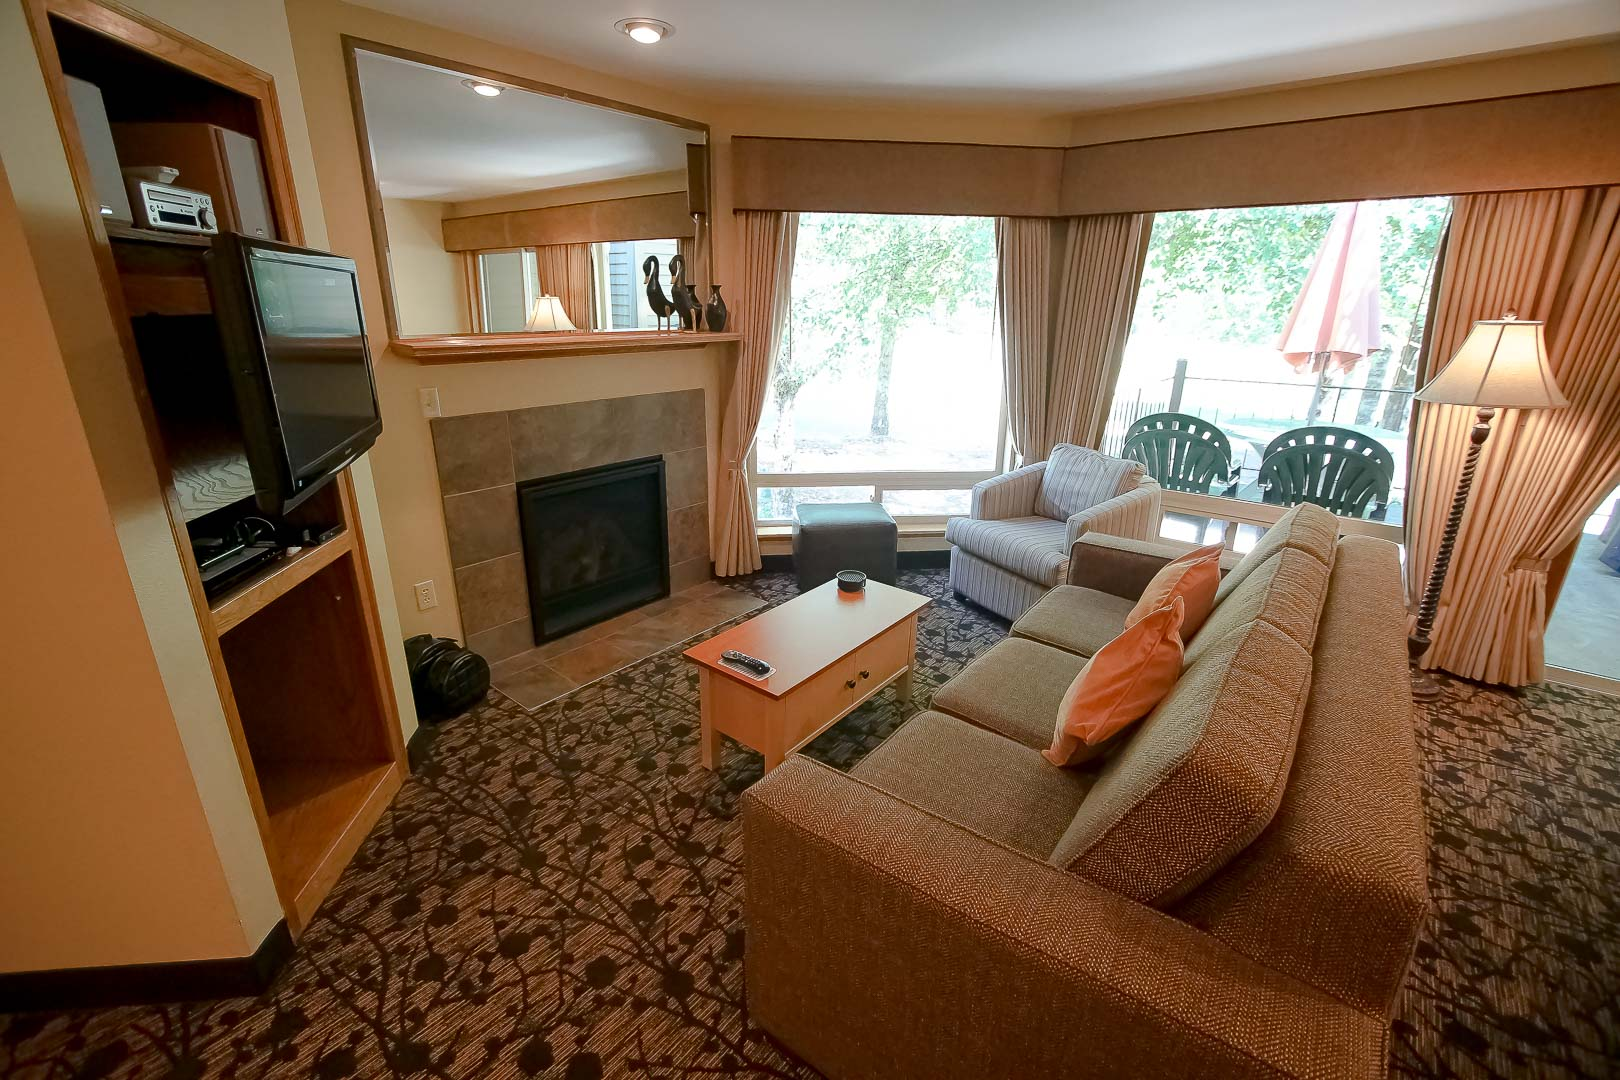 A fully equipped Living room area at VRI's Whispering Woods Resort in Oregon.